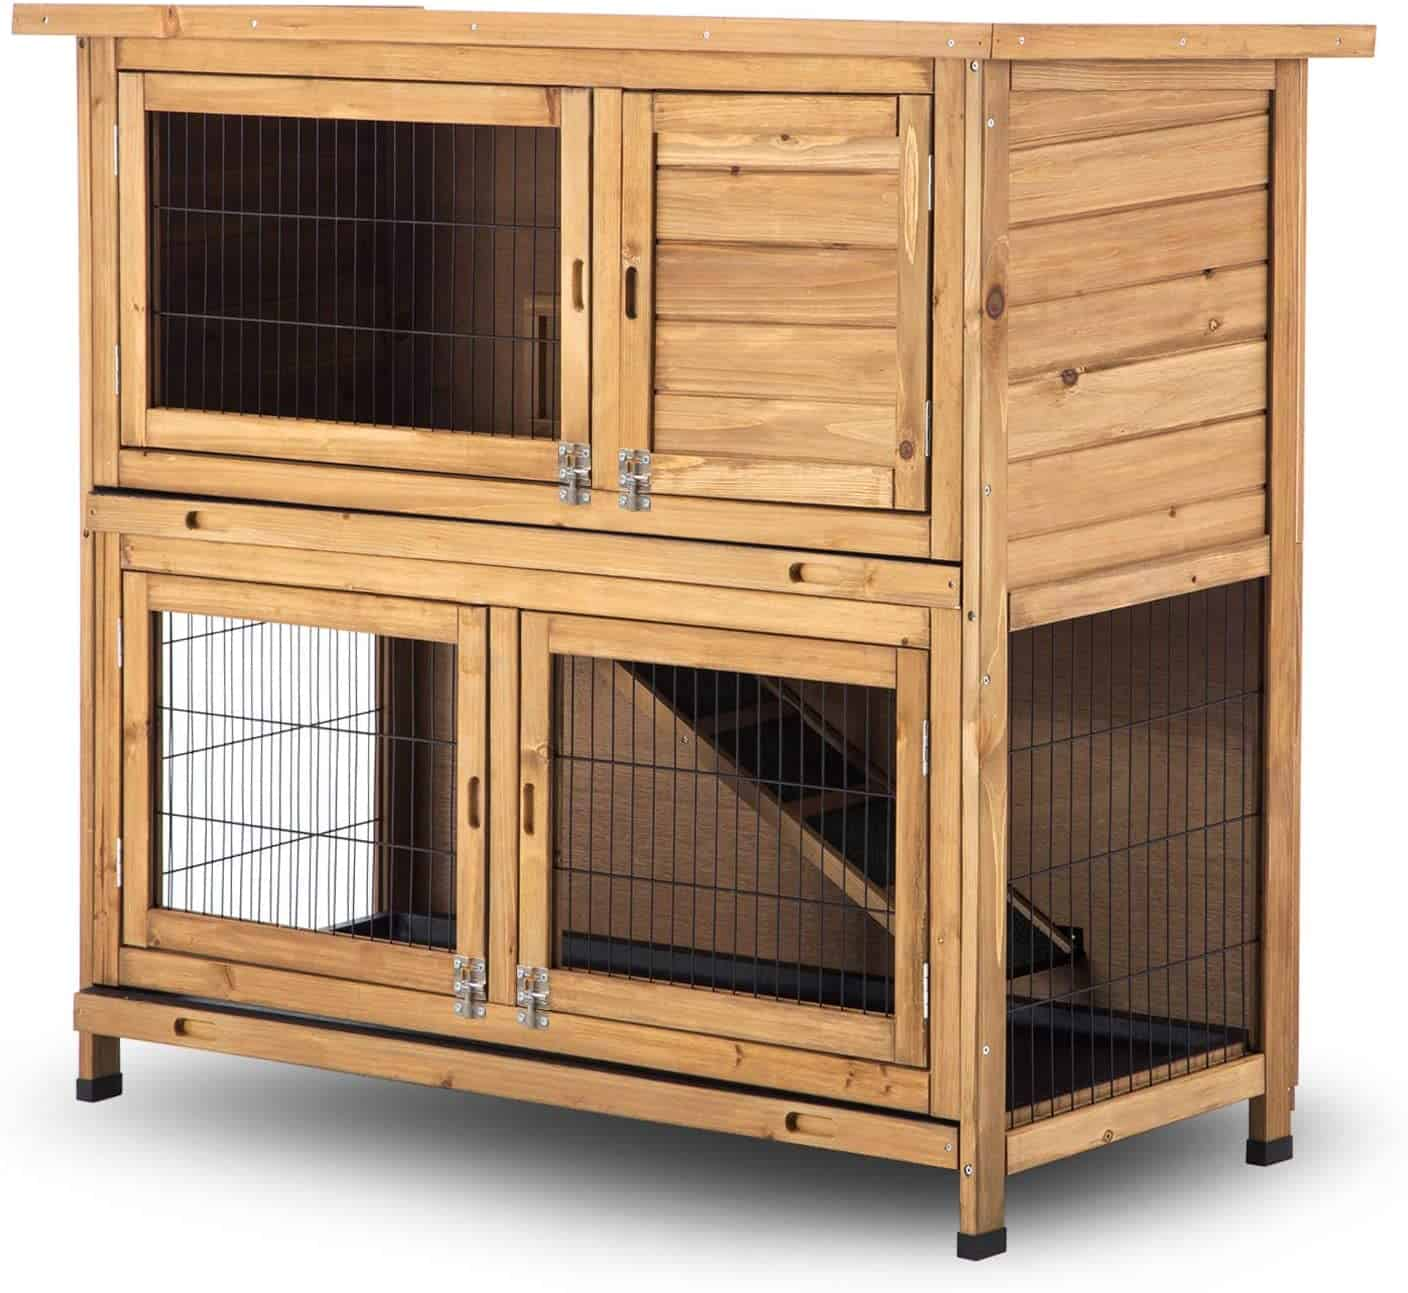 Lovupet Wooden Rabbit Hutch Bunny Cage Timber Small Animal Habitat with Four Doors and Tray